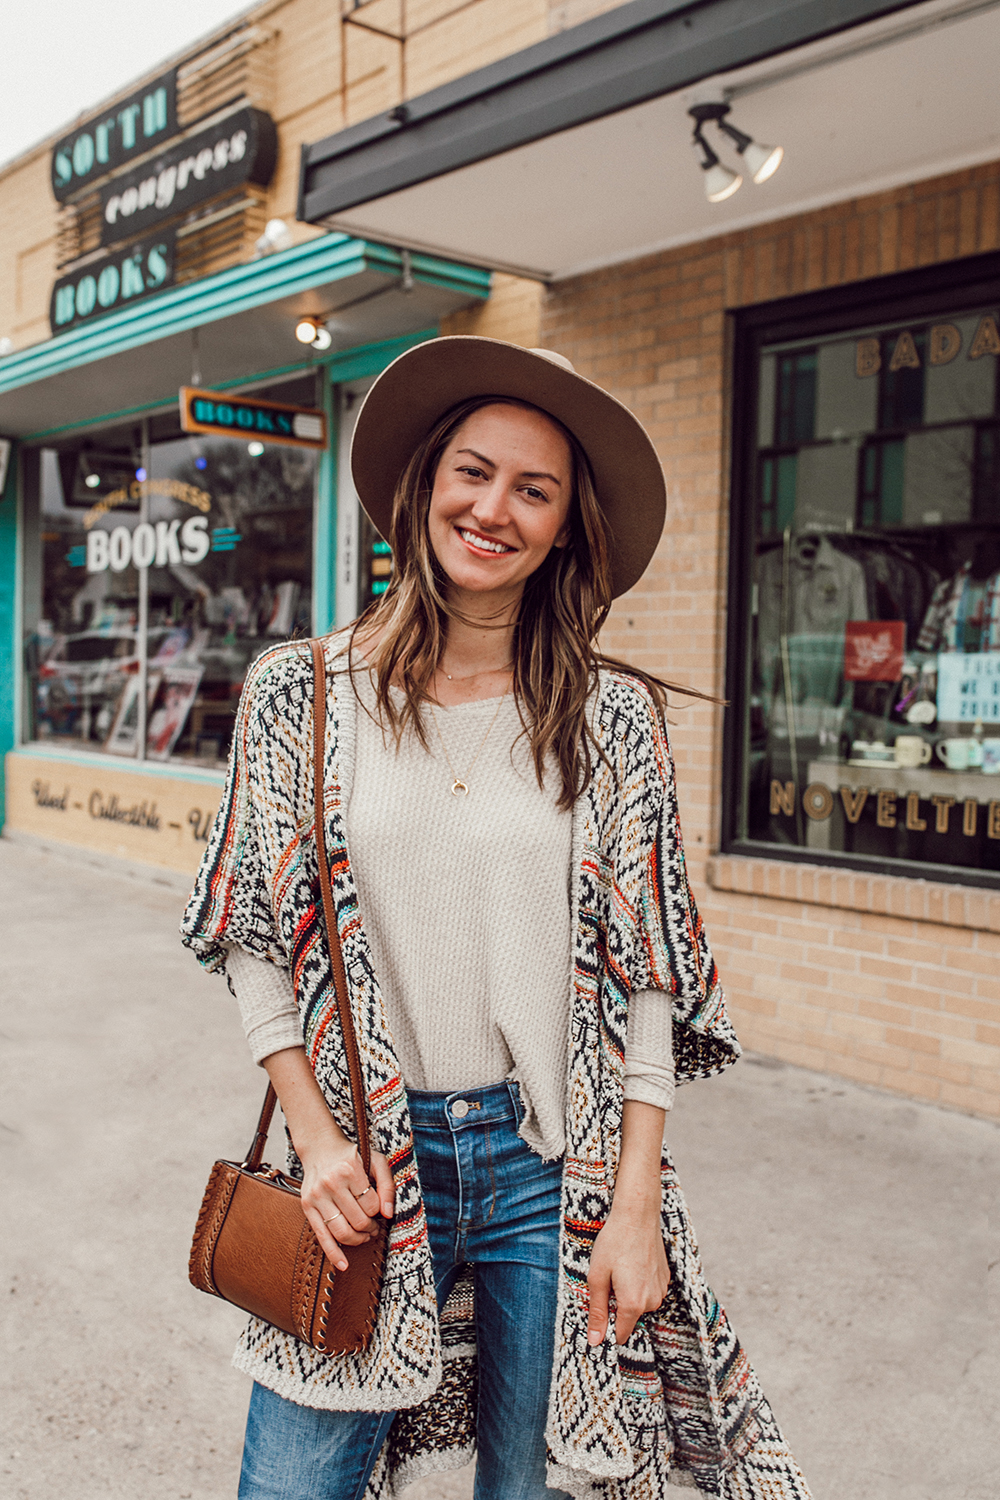 livvyland-blog-olivia-watson-austin-texas-fashion-style-blogger-south-congress-avenue-sole-society-taupe-clogs-boho-outfit-idea-9